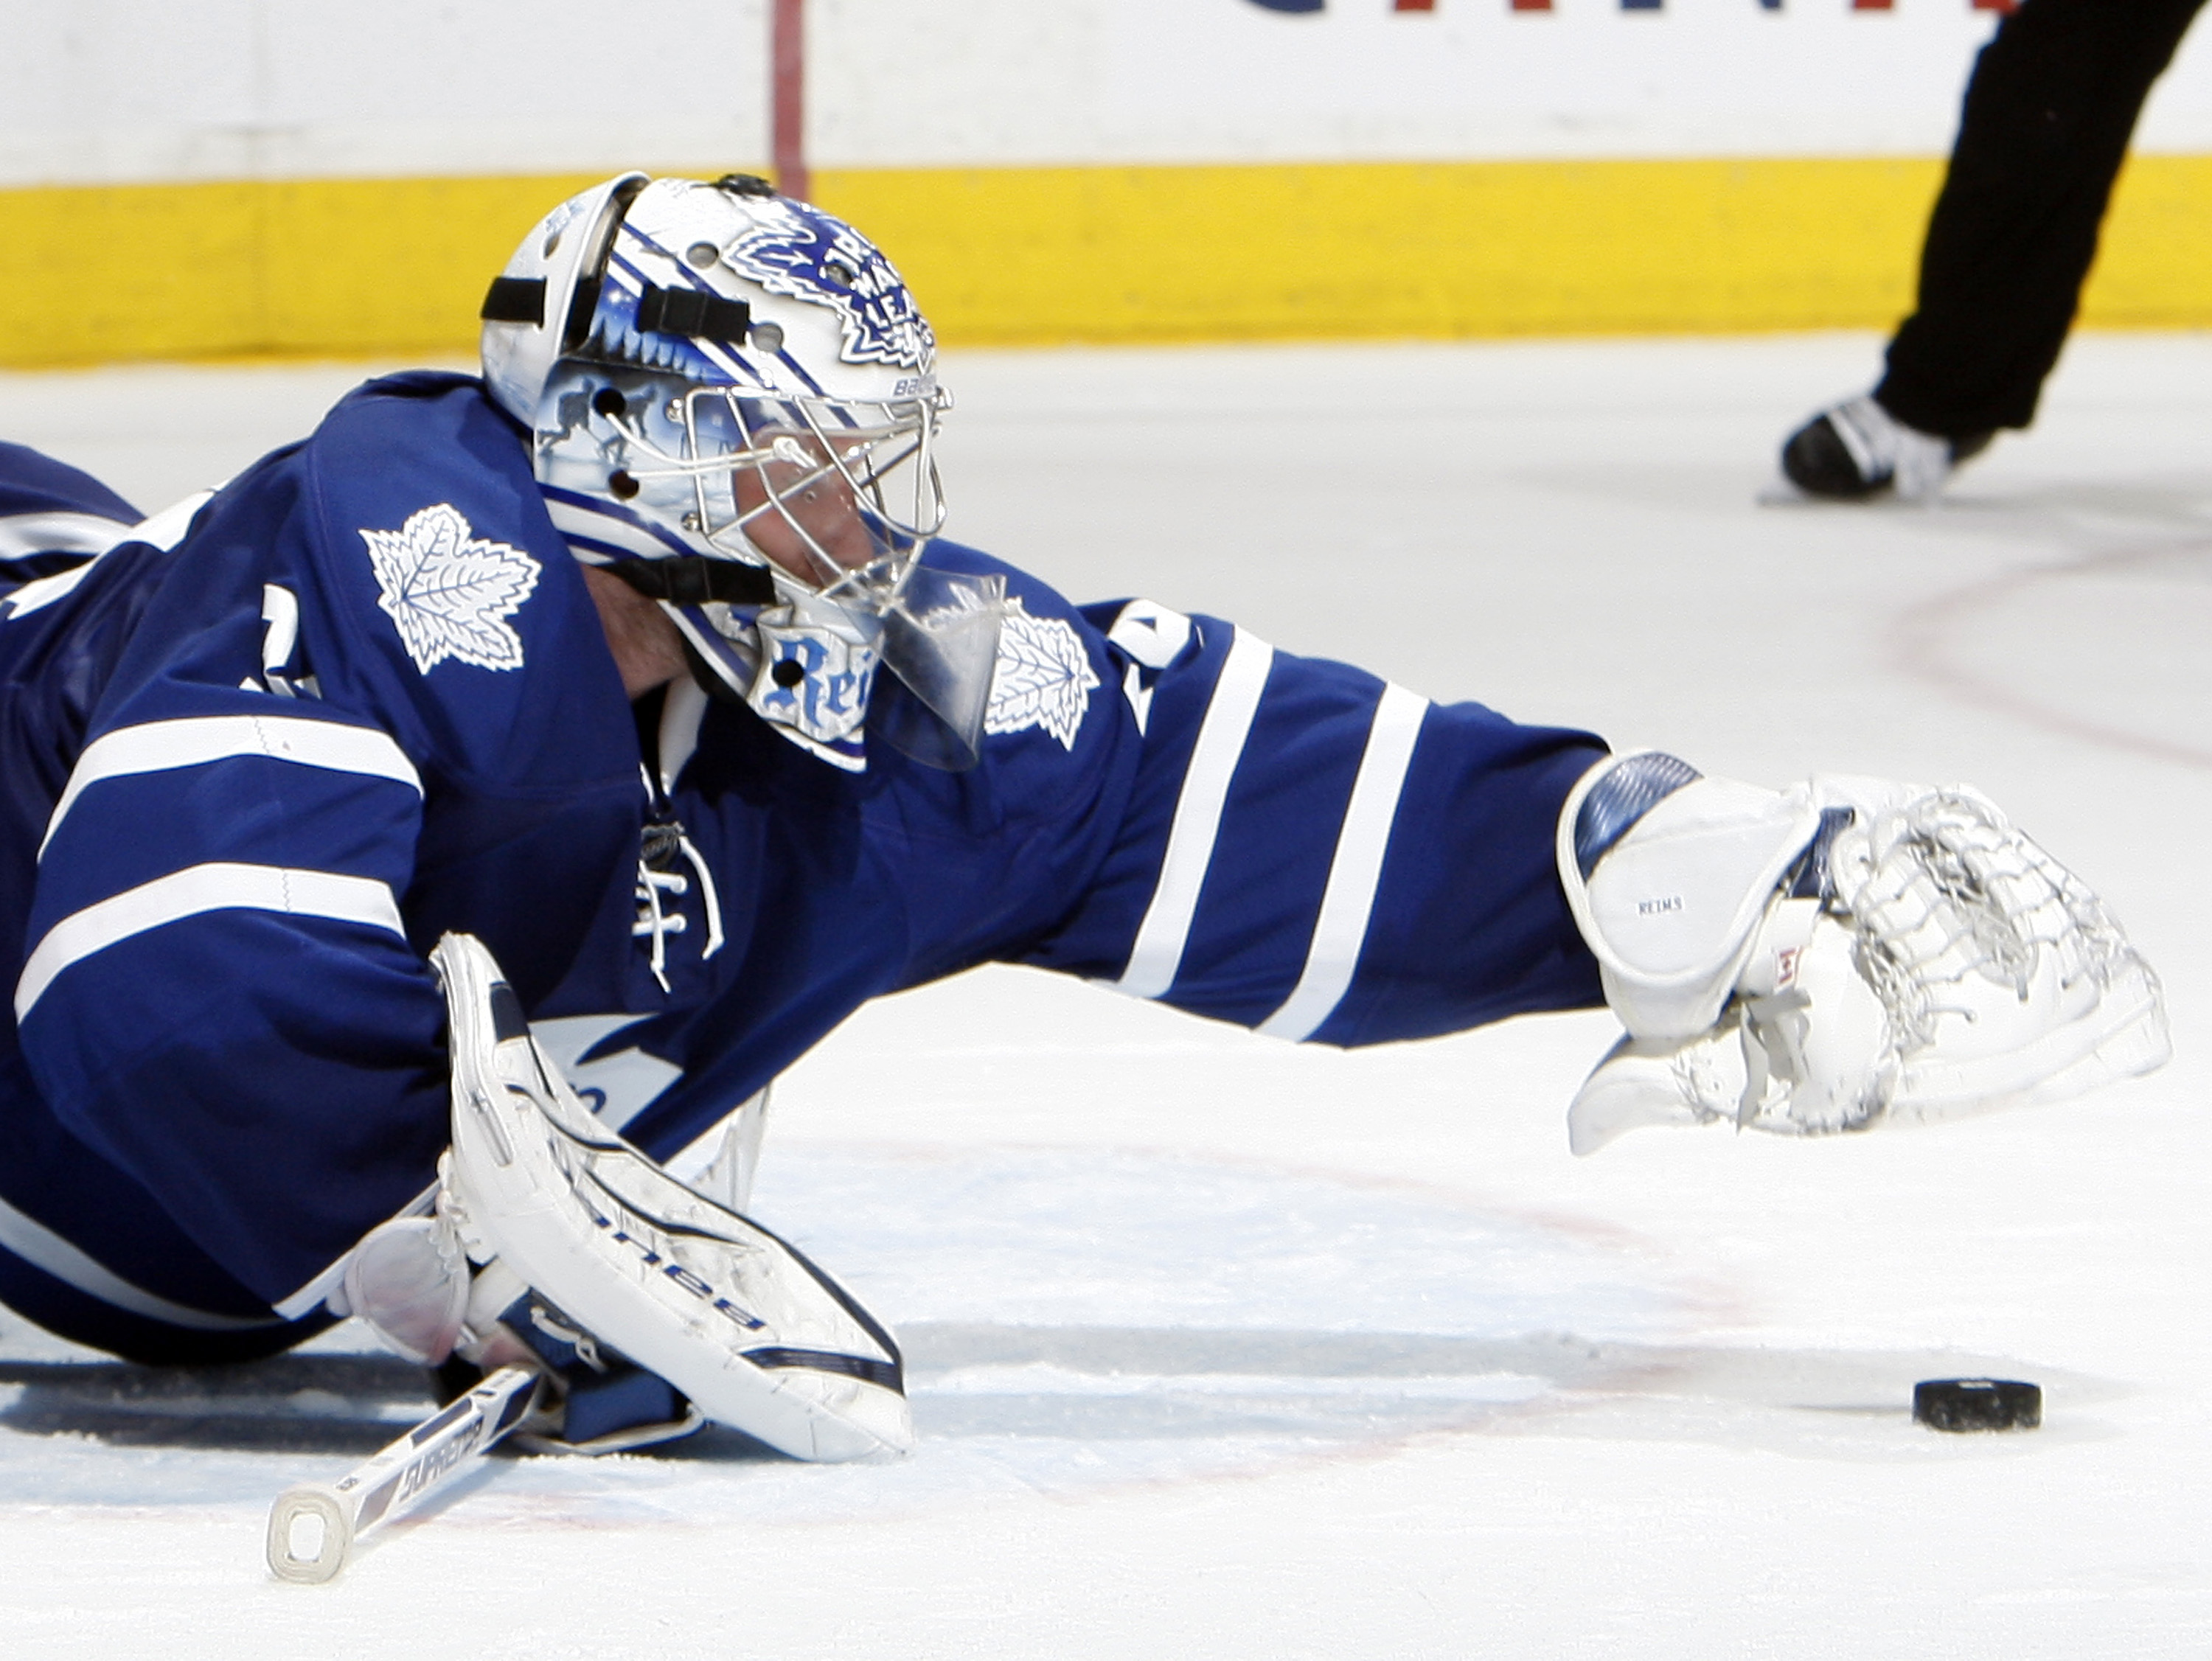 TORONTO, CANADA - FEBRUARY 26: James Reimer #34 of the Toronto Maple Leafs jumps on a rebound against the Pittsburgh Penguins during game action at the Air Canada Centre February 26, 2011 in Toronto, Ontario, Canada. (Photo by Abelimages/Getty Images)